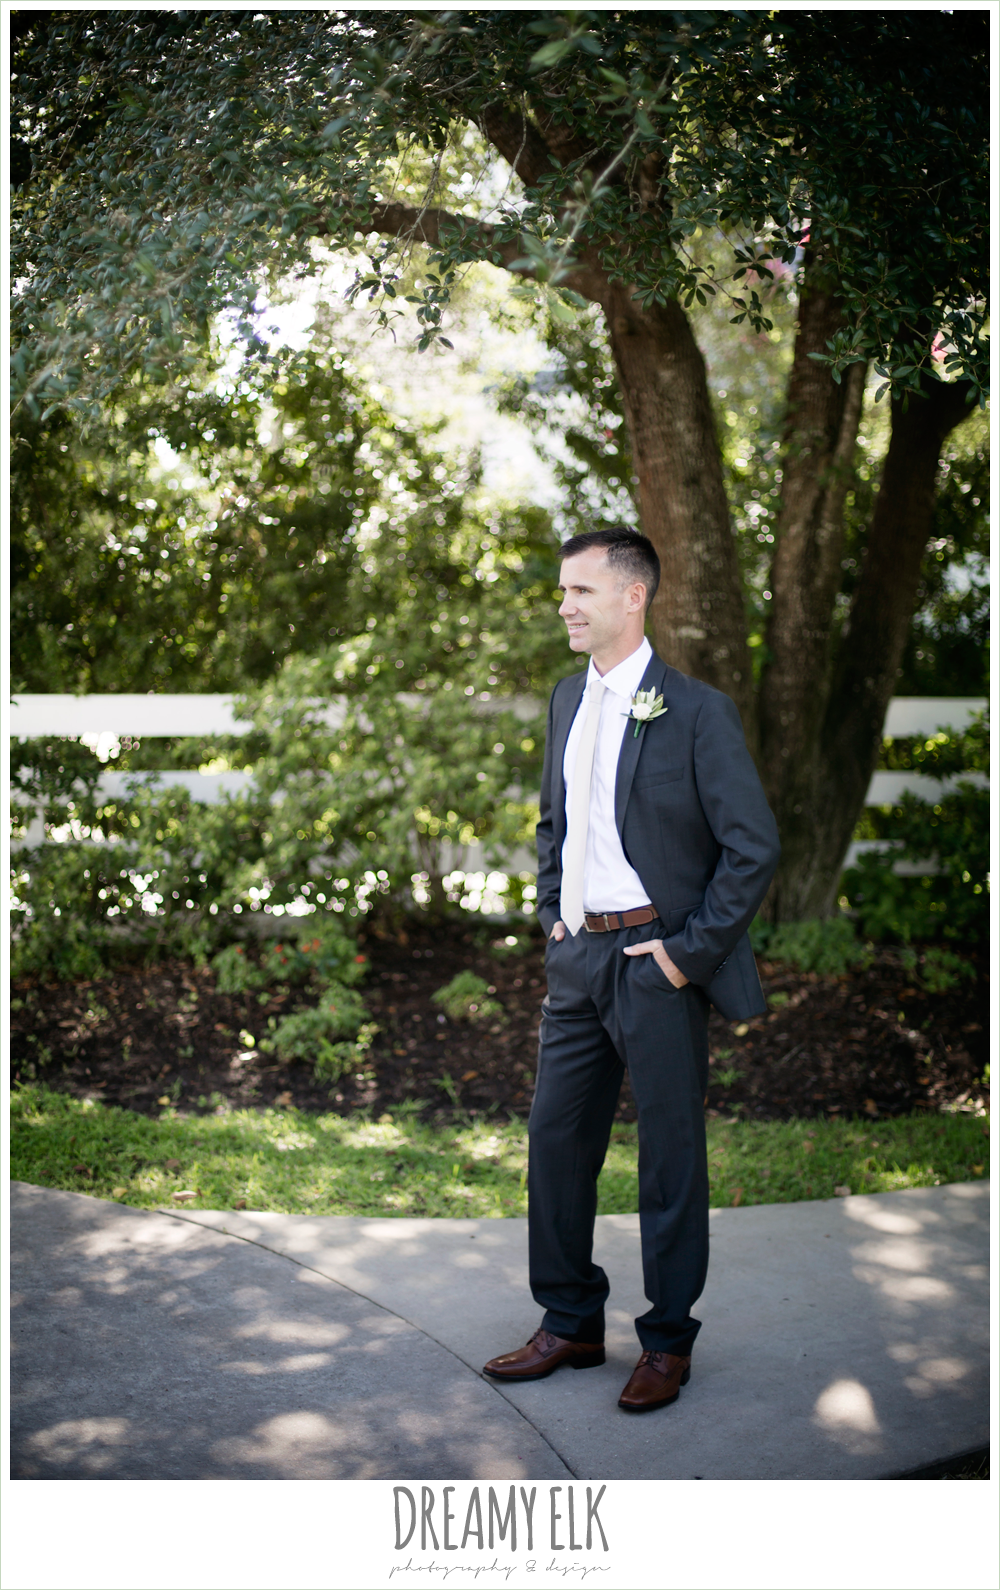 outdoor groom photo, hugo boss groom's suit, july summer morning wedding, ashelynn manor, magnolia, texas {dreamy elk photography and design}